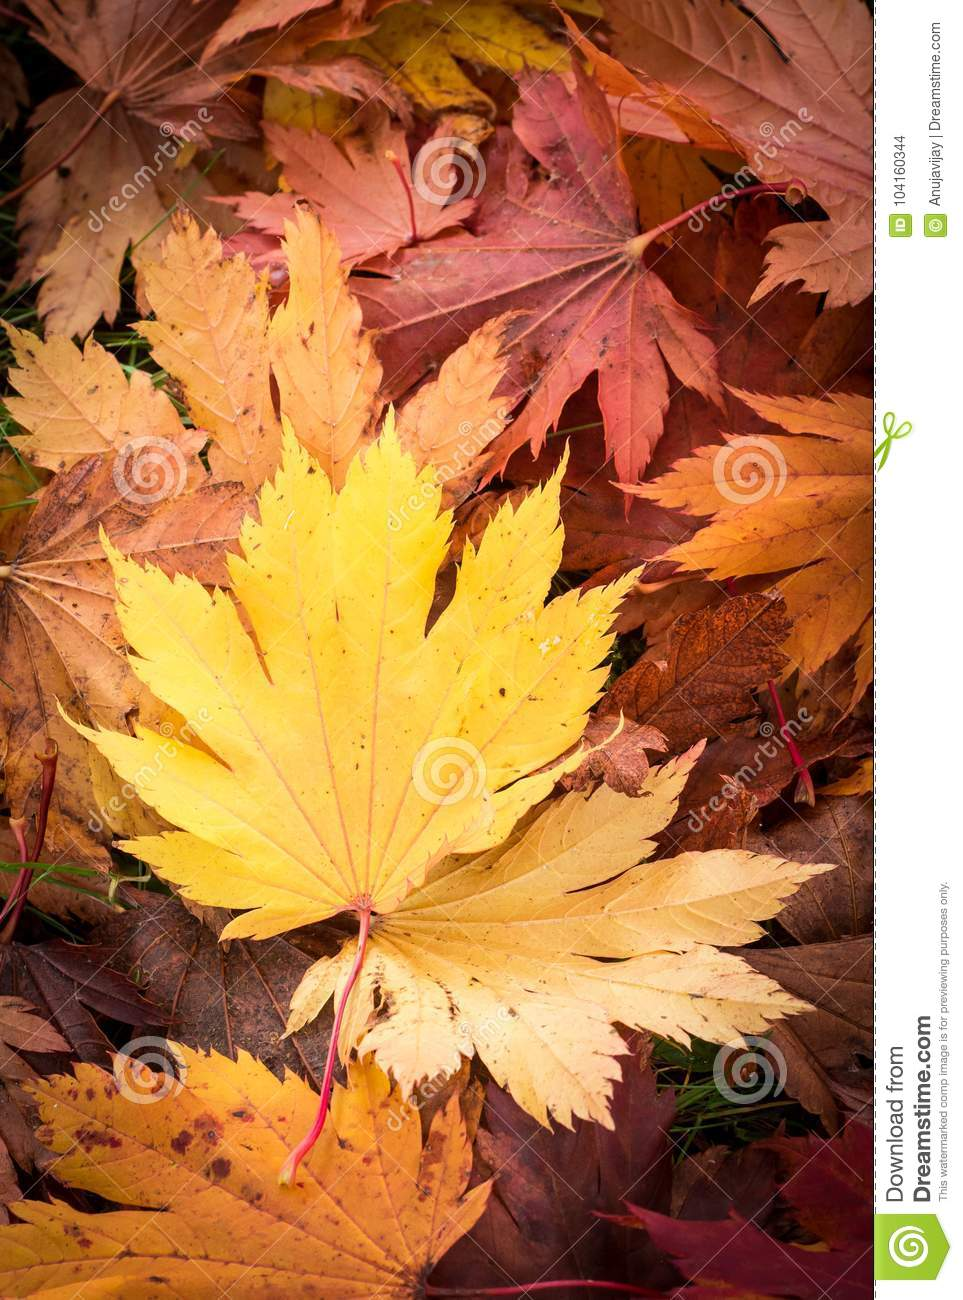 Autum Leaves Wallpaper Stock Photo Image Of Aussie 104160344